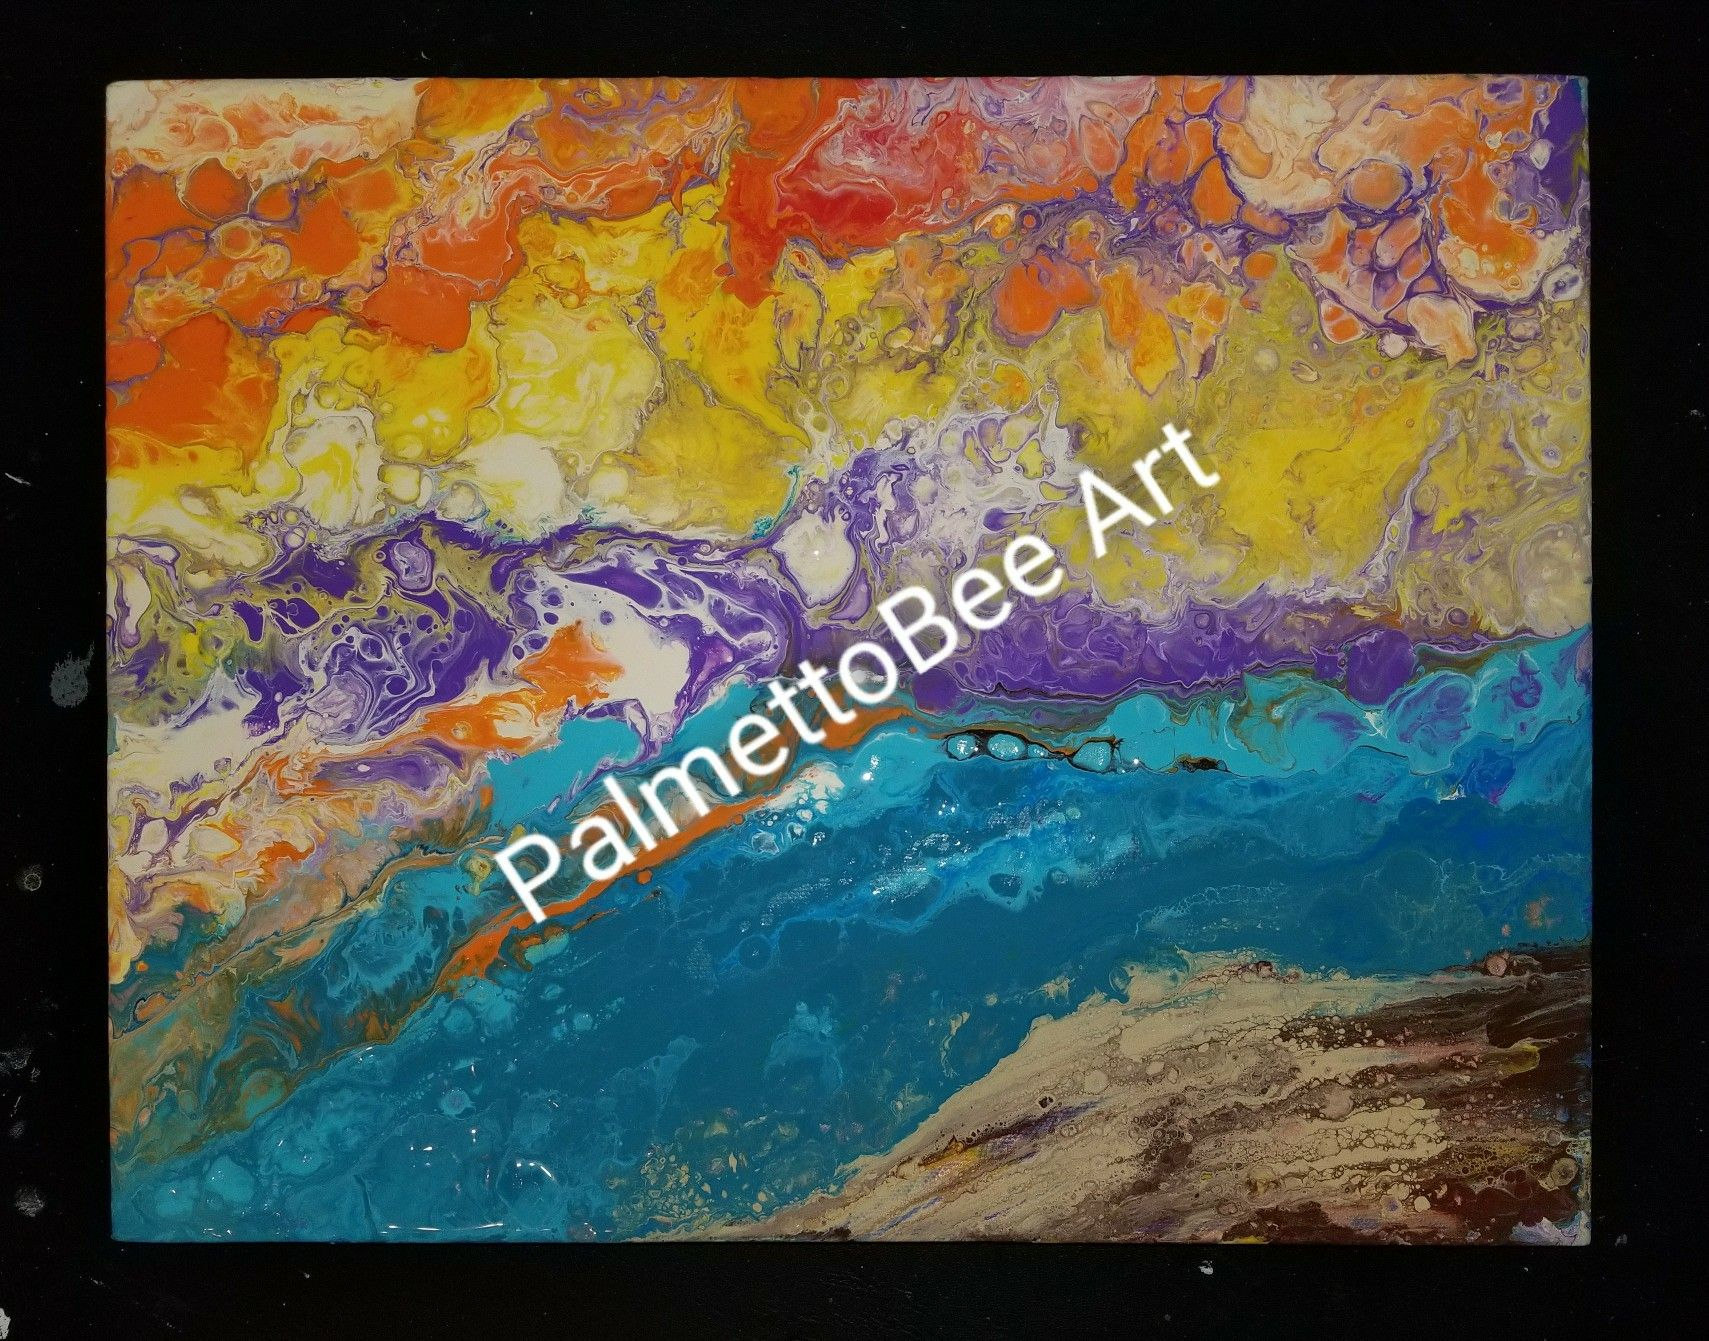 Pin by penny thomas on palmettobee art art painting